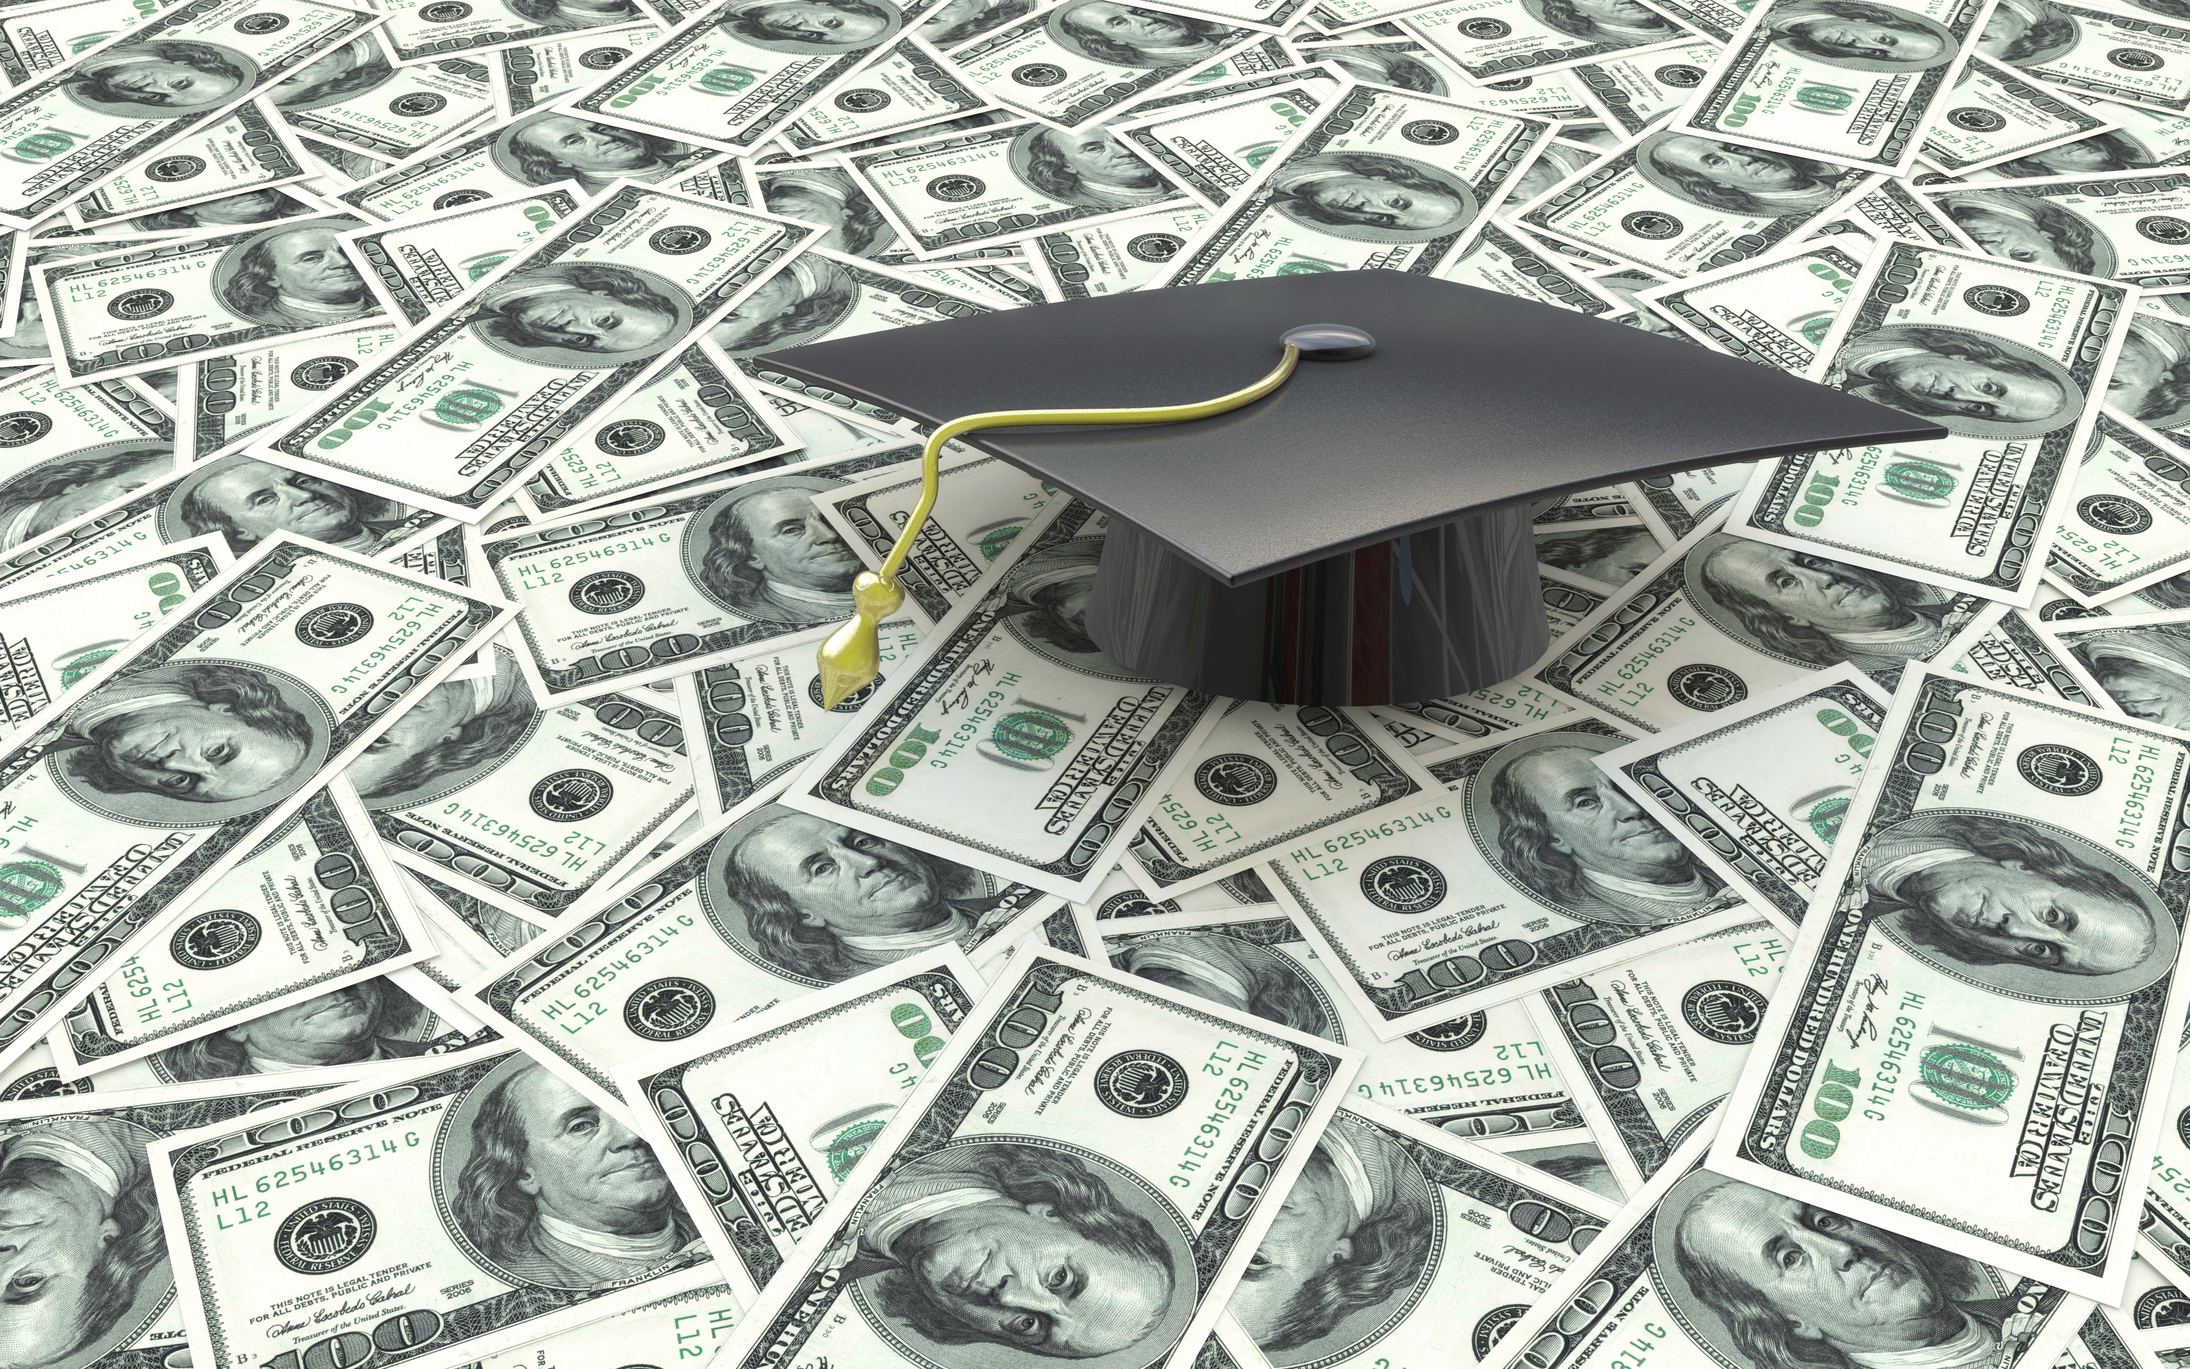 Should I Pay Off My Credit Cards or Student Loans?